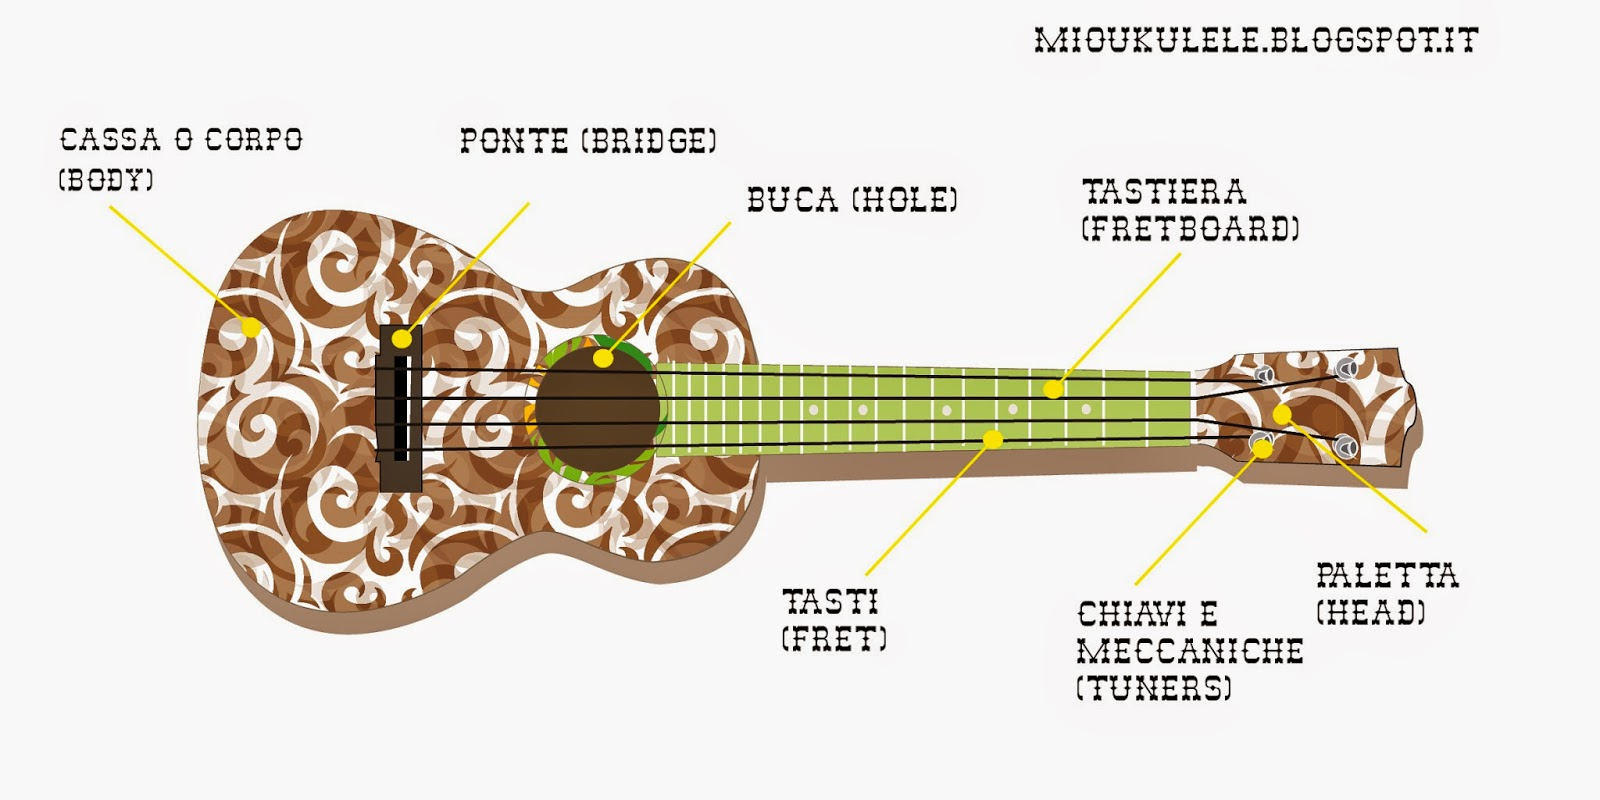 mioukulele/blogspot.it